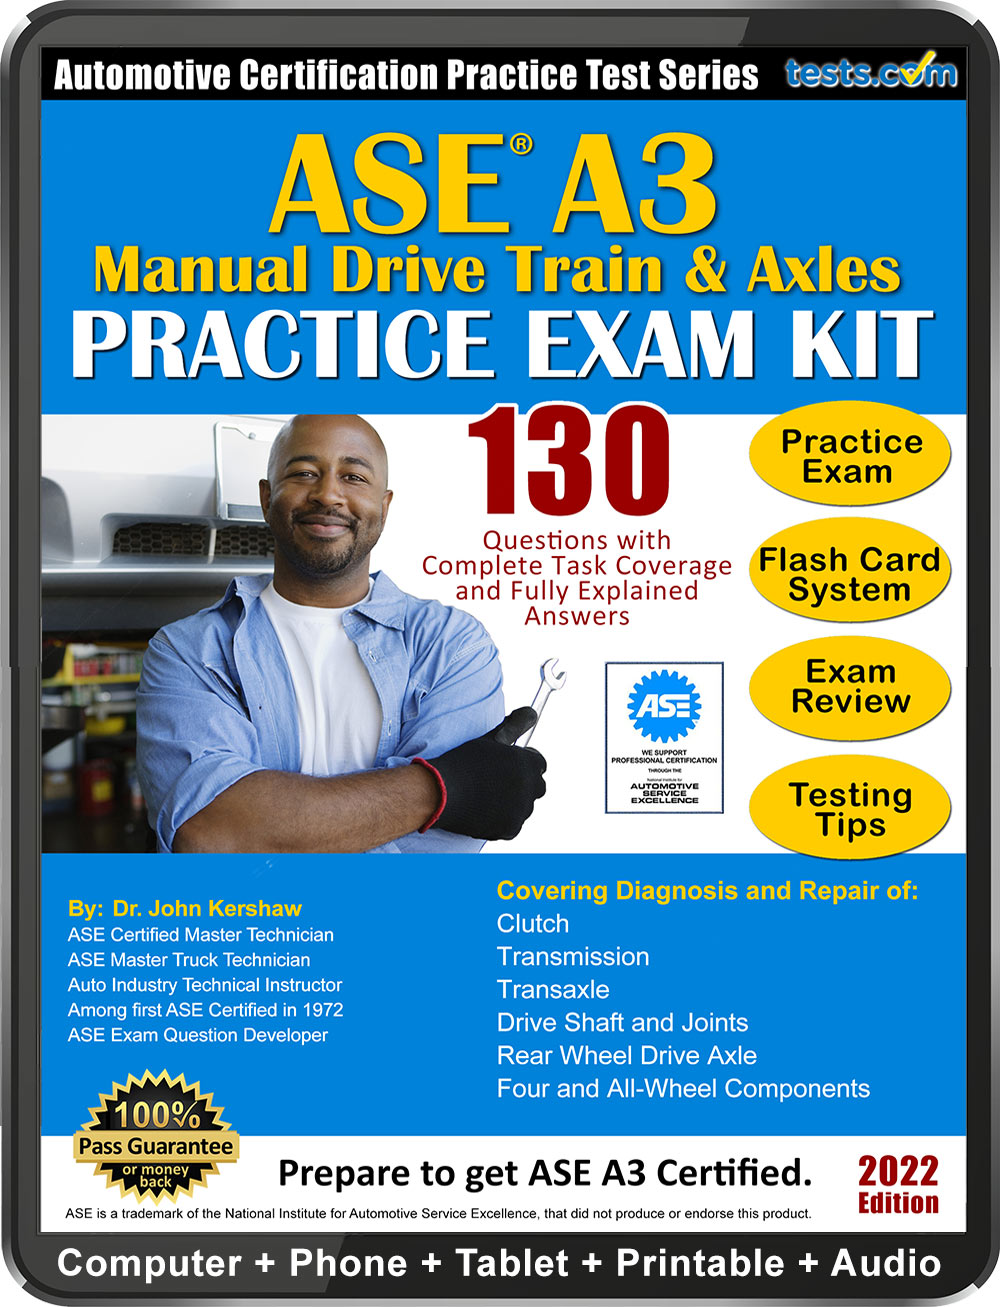 ase practice test a3 questions certification tests exam answers study kit a2 guaranteed expert pass written material money